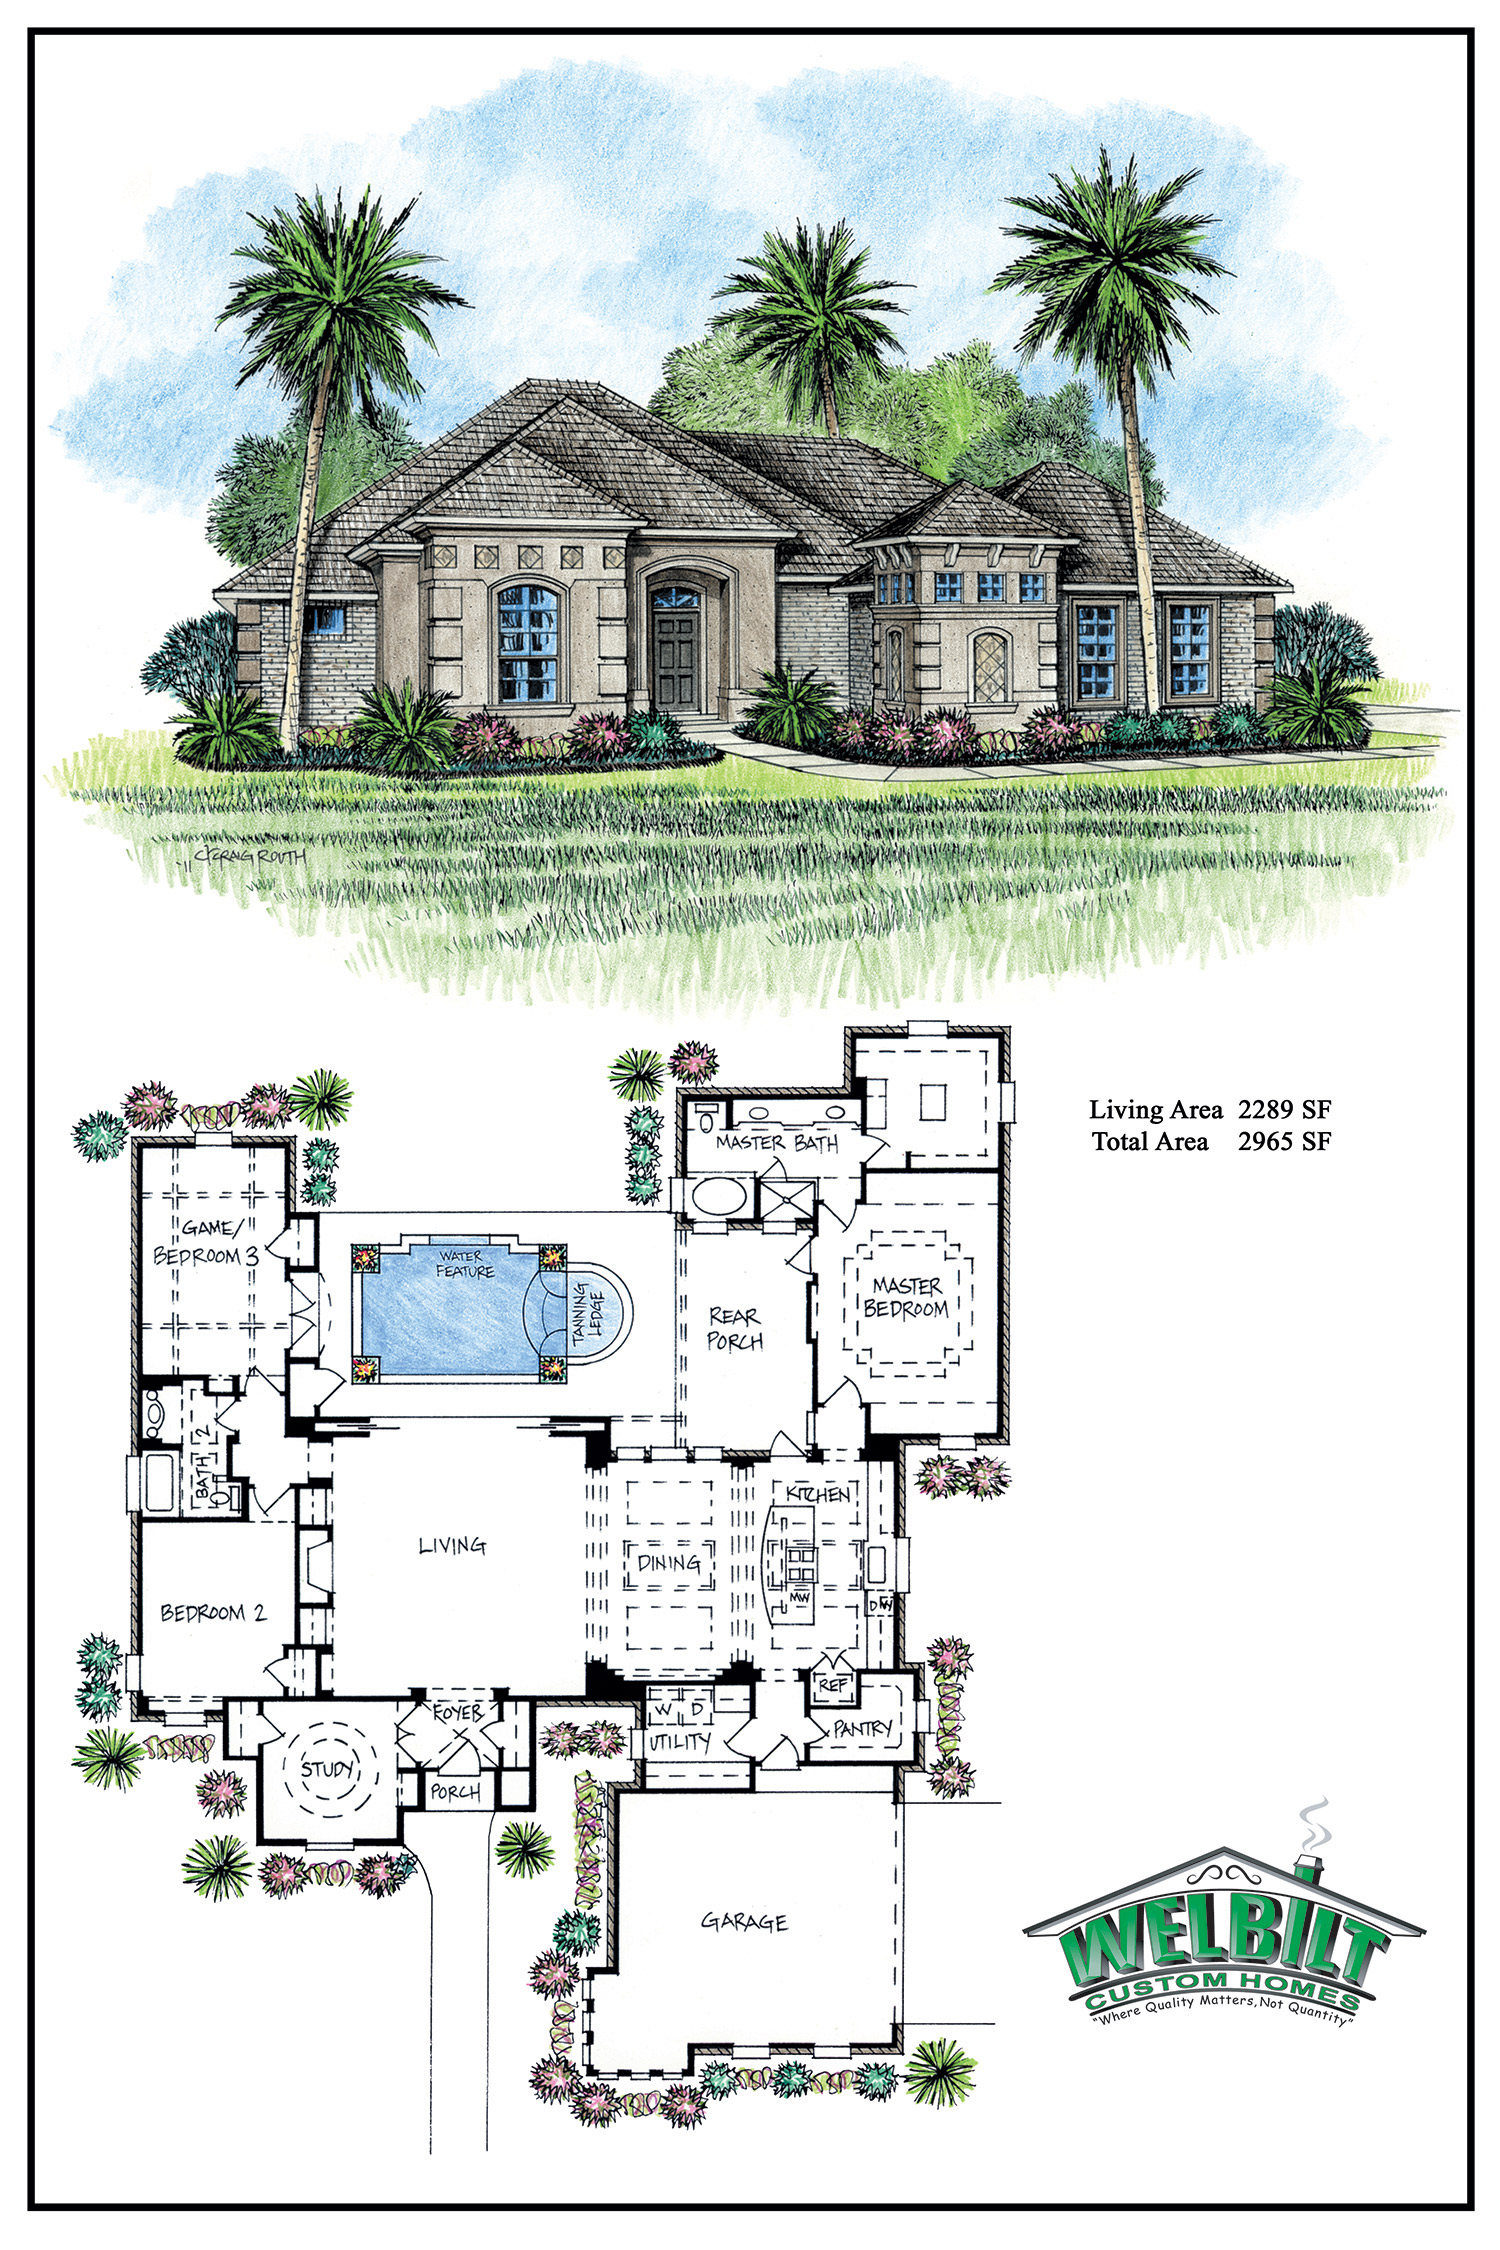 2011-Parade-of-Homes Rendition